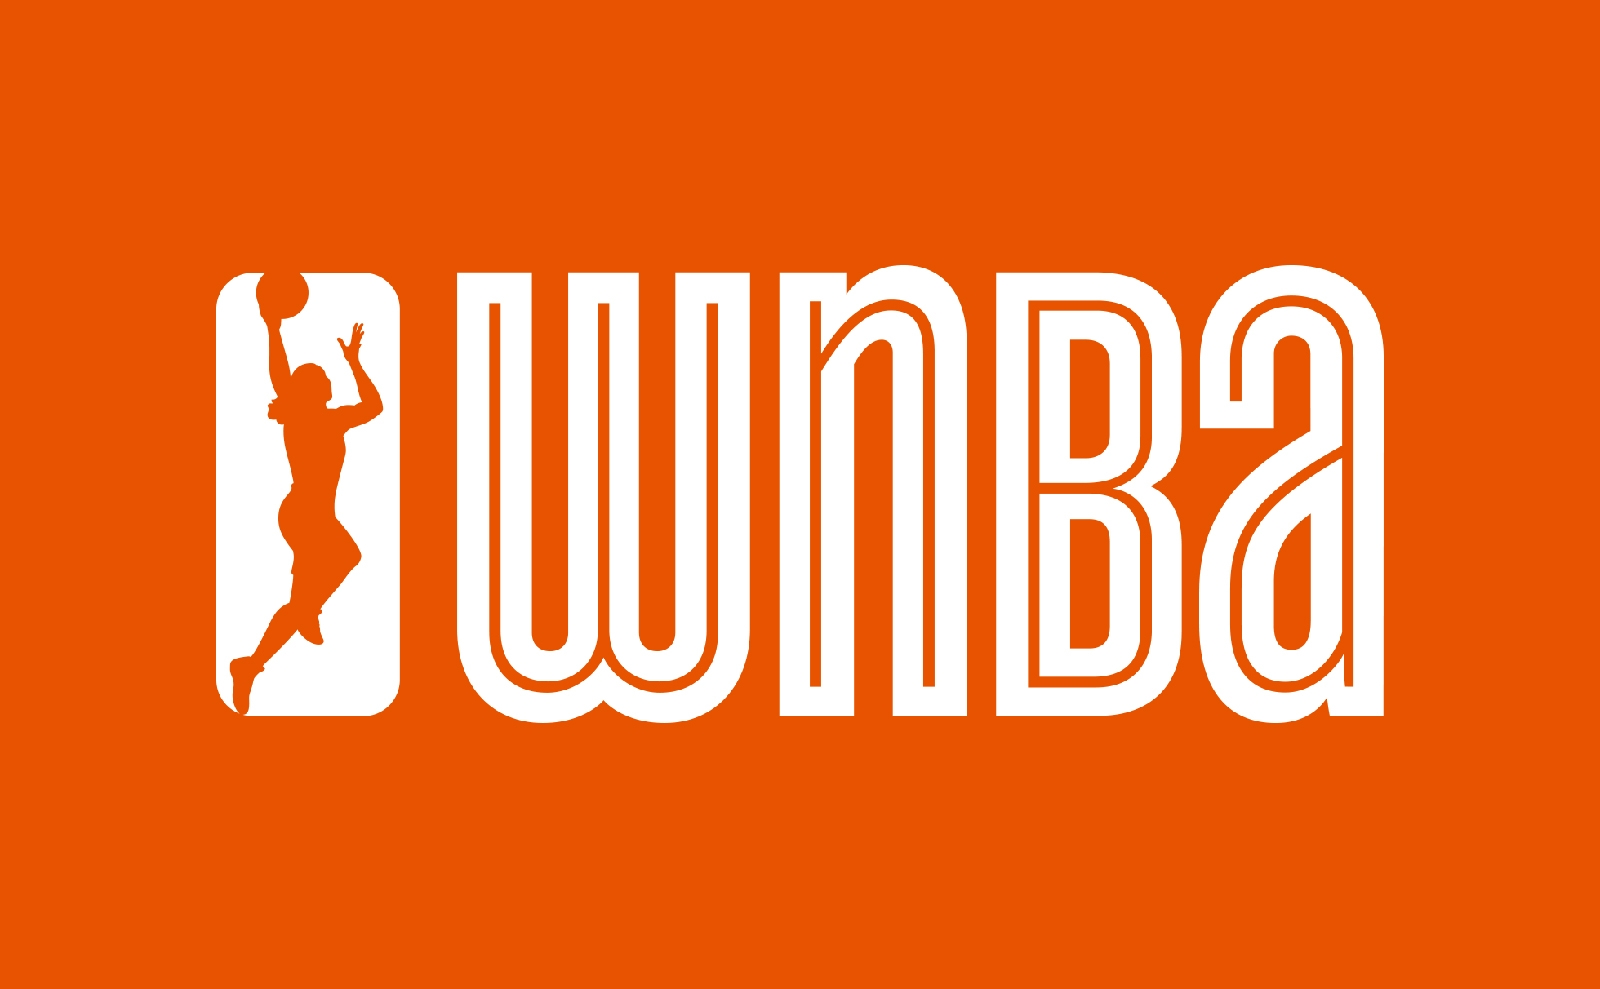 WNBA logo design with jumping woman